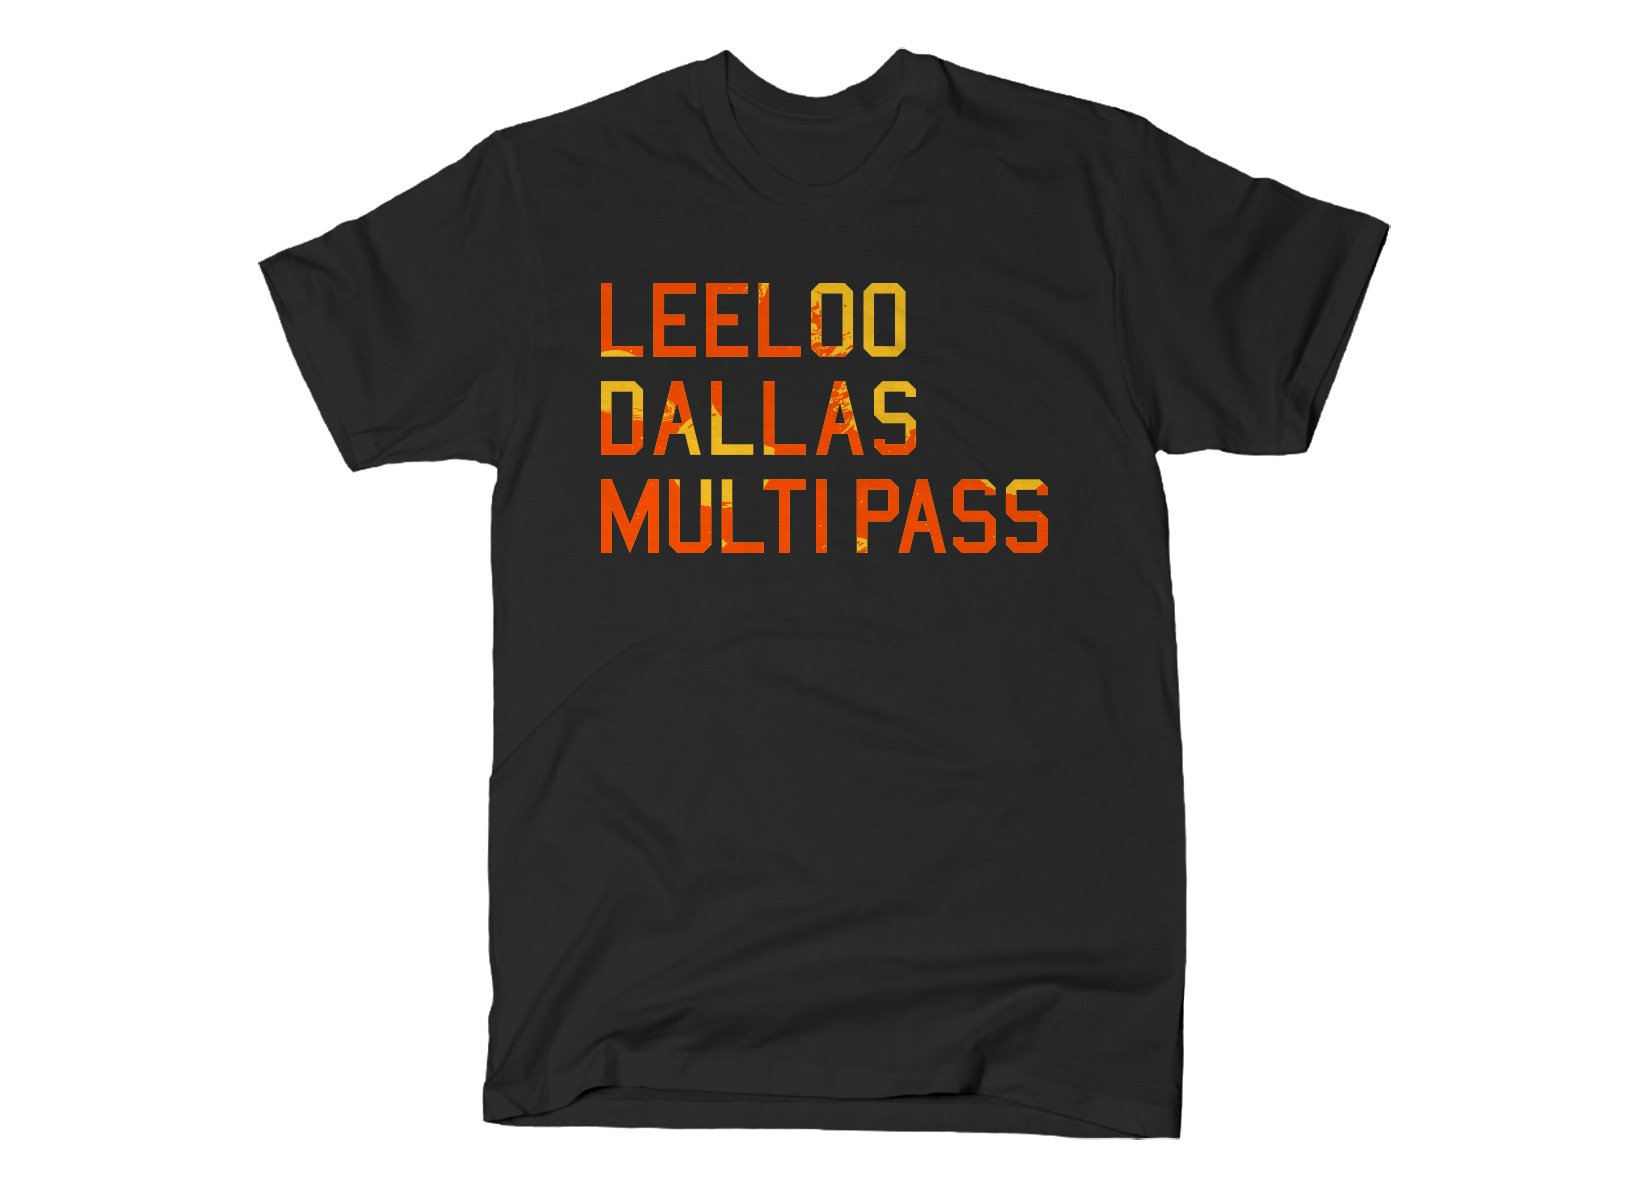 Leeloo Dallas Multipass on Mens T-Shirt